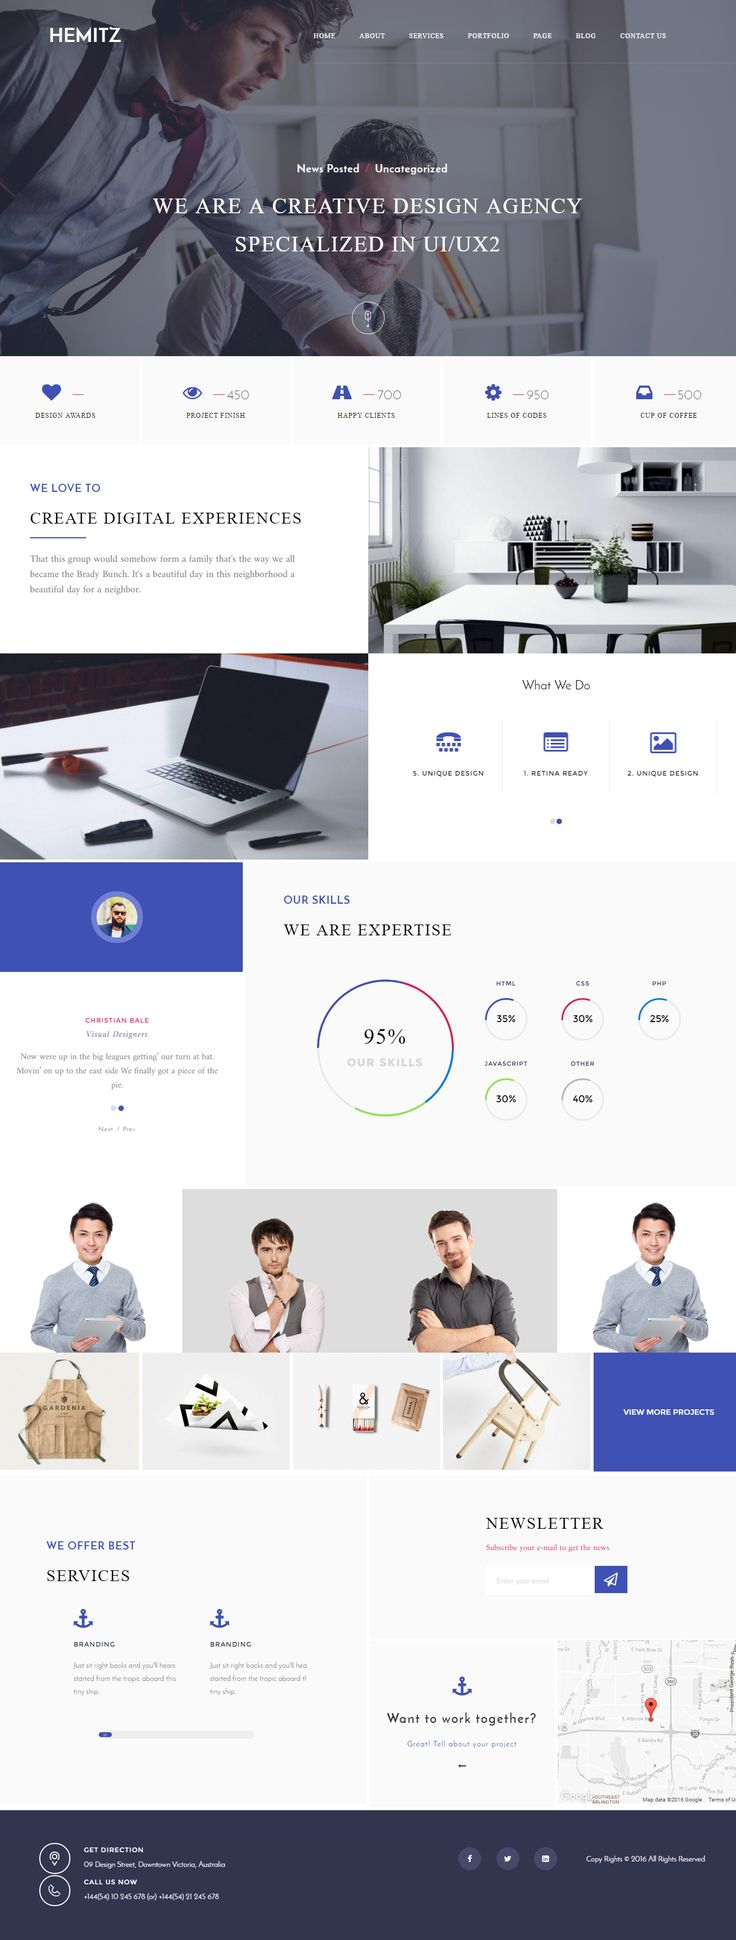 Hemitz is modern, clean and elegant portfolio WordPress Theme. It can be used for creative agencies to show porfolio and projects. You can builder portfolio website using Hemitz WordPress theme. It has a lot of customization options, comes with number of shortcodes. It comes with Visual Composer page builde